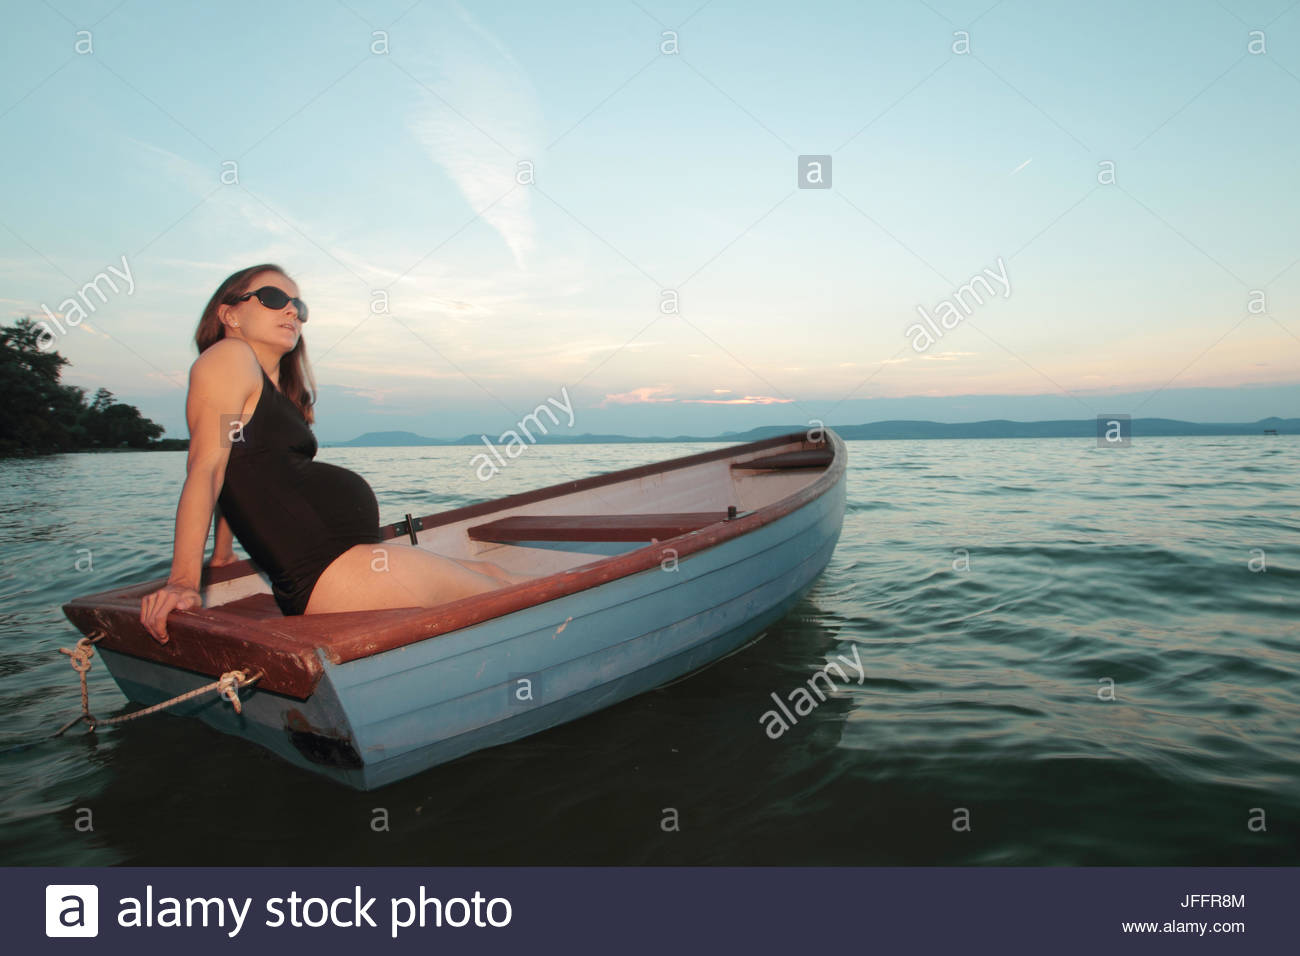 A pregnant woman relaxing in a rowboat at sunset, on Lake Balaton. - Stock Image